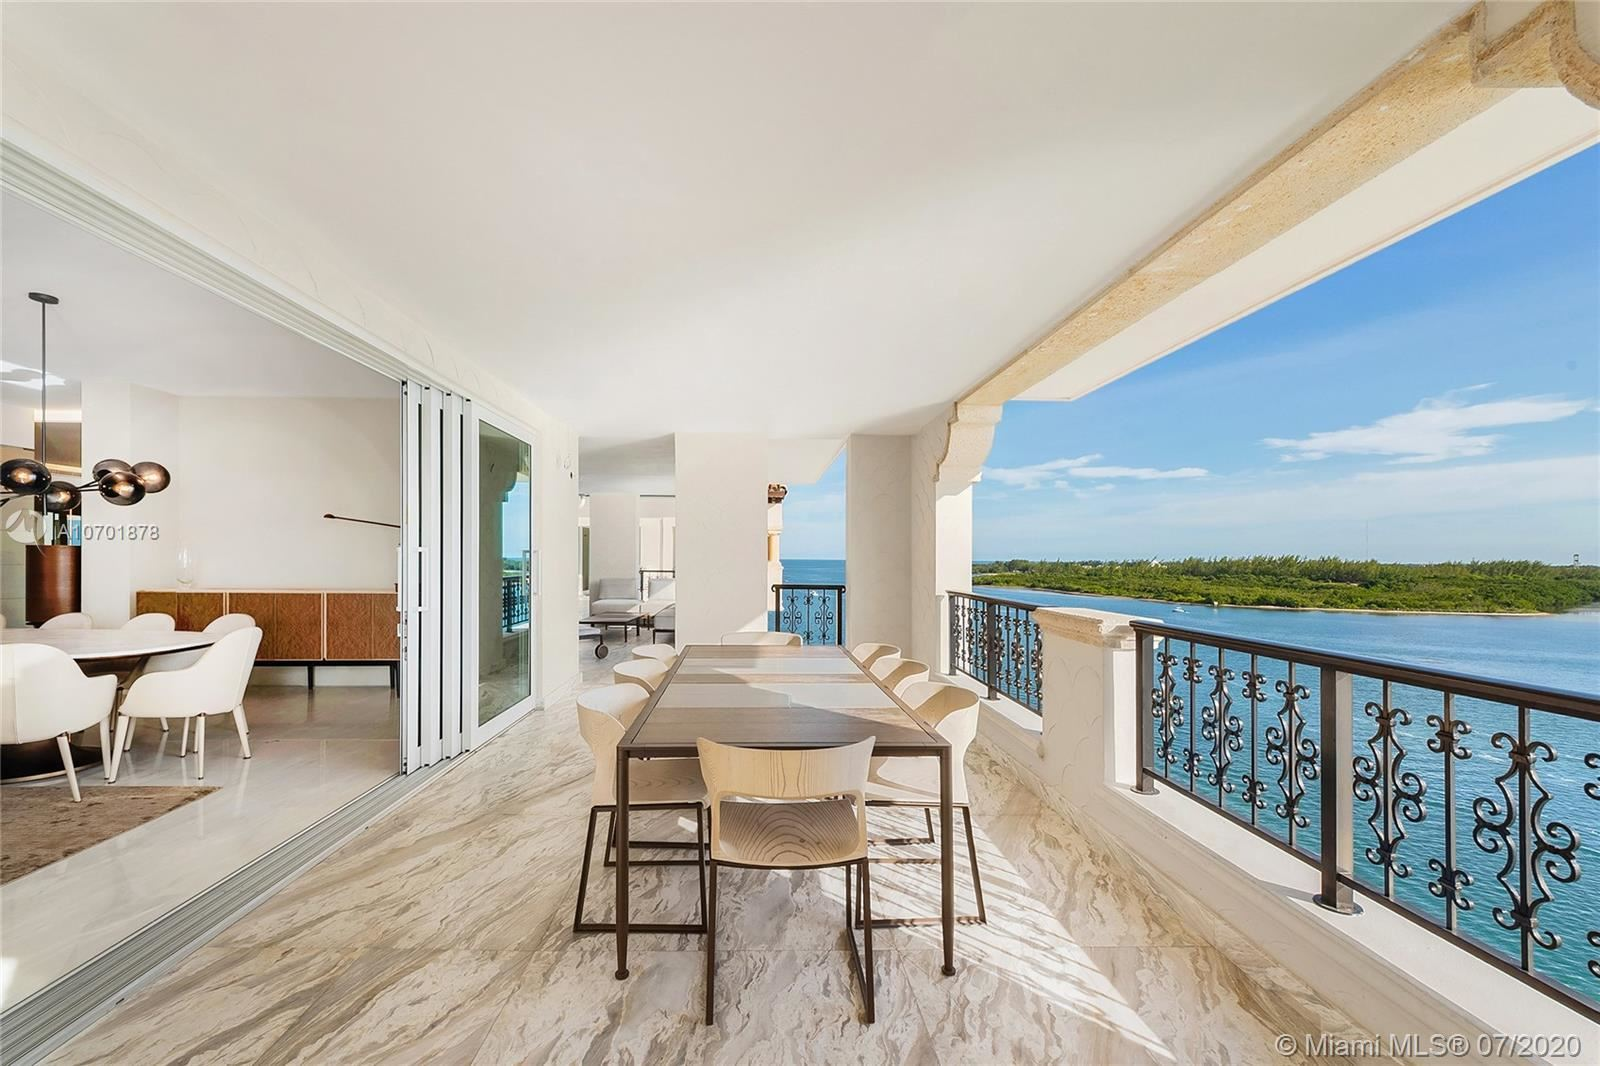 Photo 26 of Listing MLS a10701878 in 5292 Fisher Island Dr #5292 Miami FL 33109